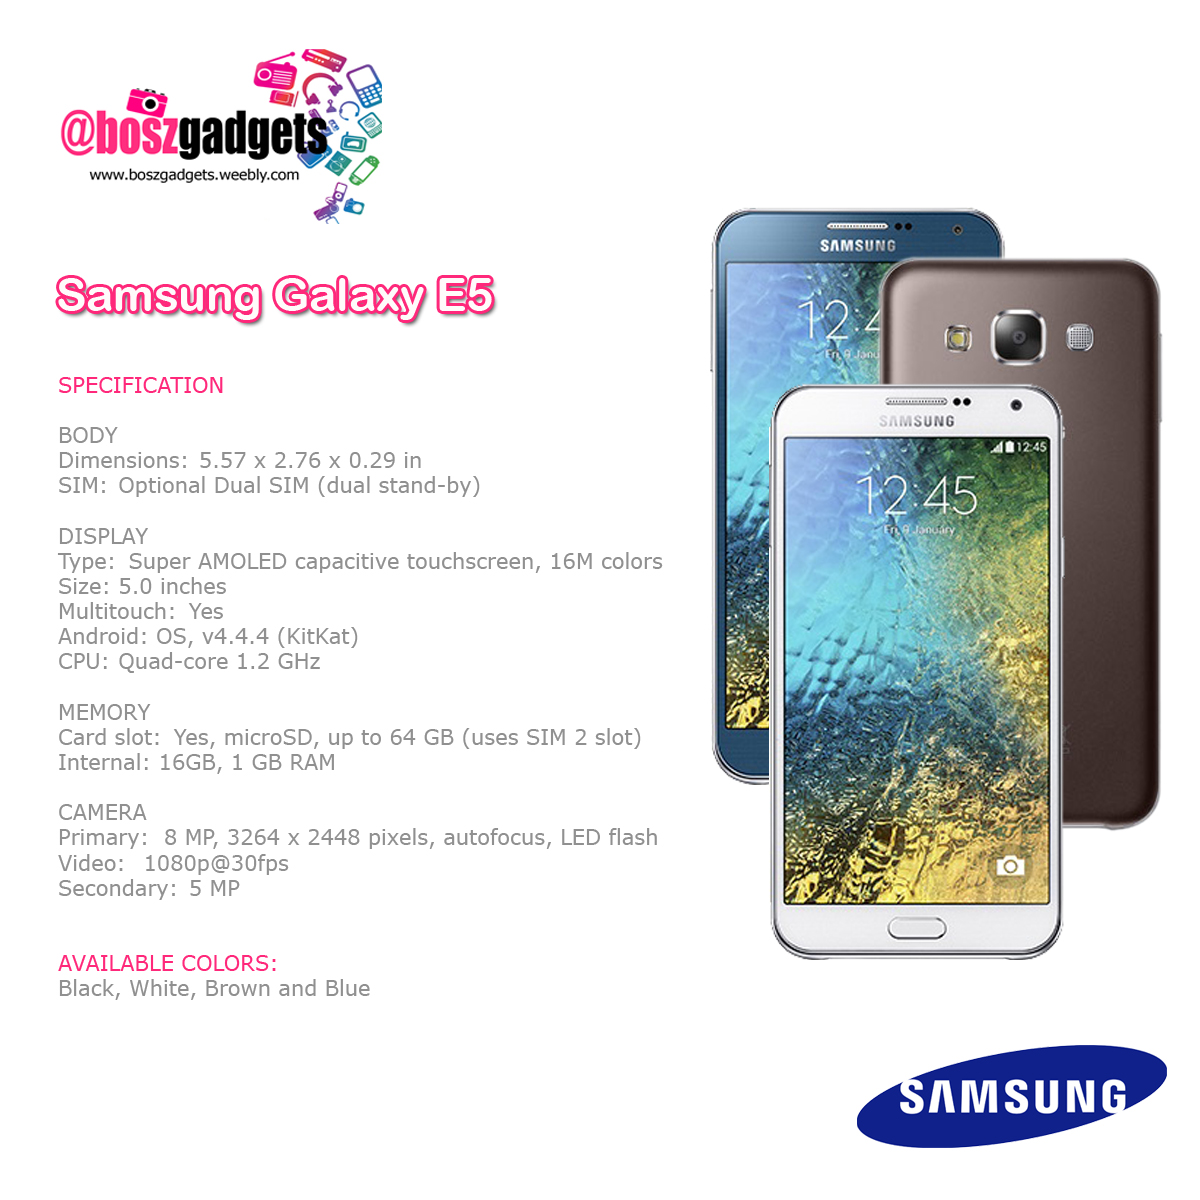 Samsung Galaxy E5 16gb White Products Boszgadgets Php11600 Black Brown And Blue With 3days Replacement 1year Service Warranty